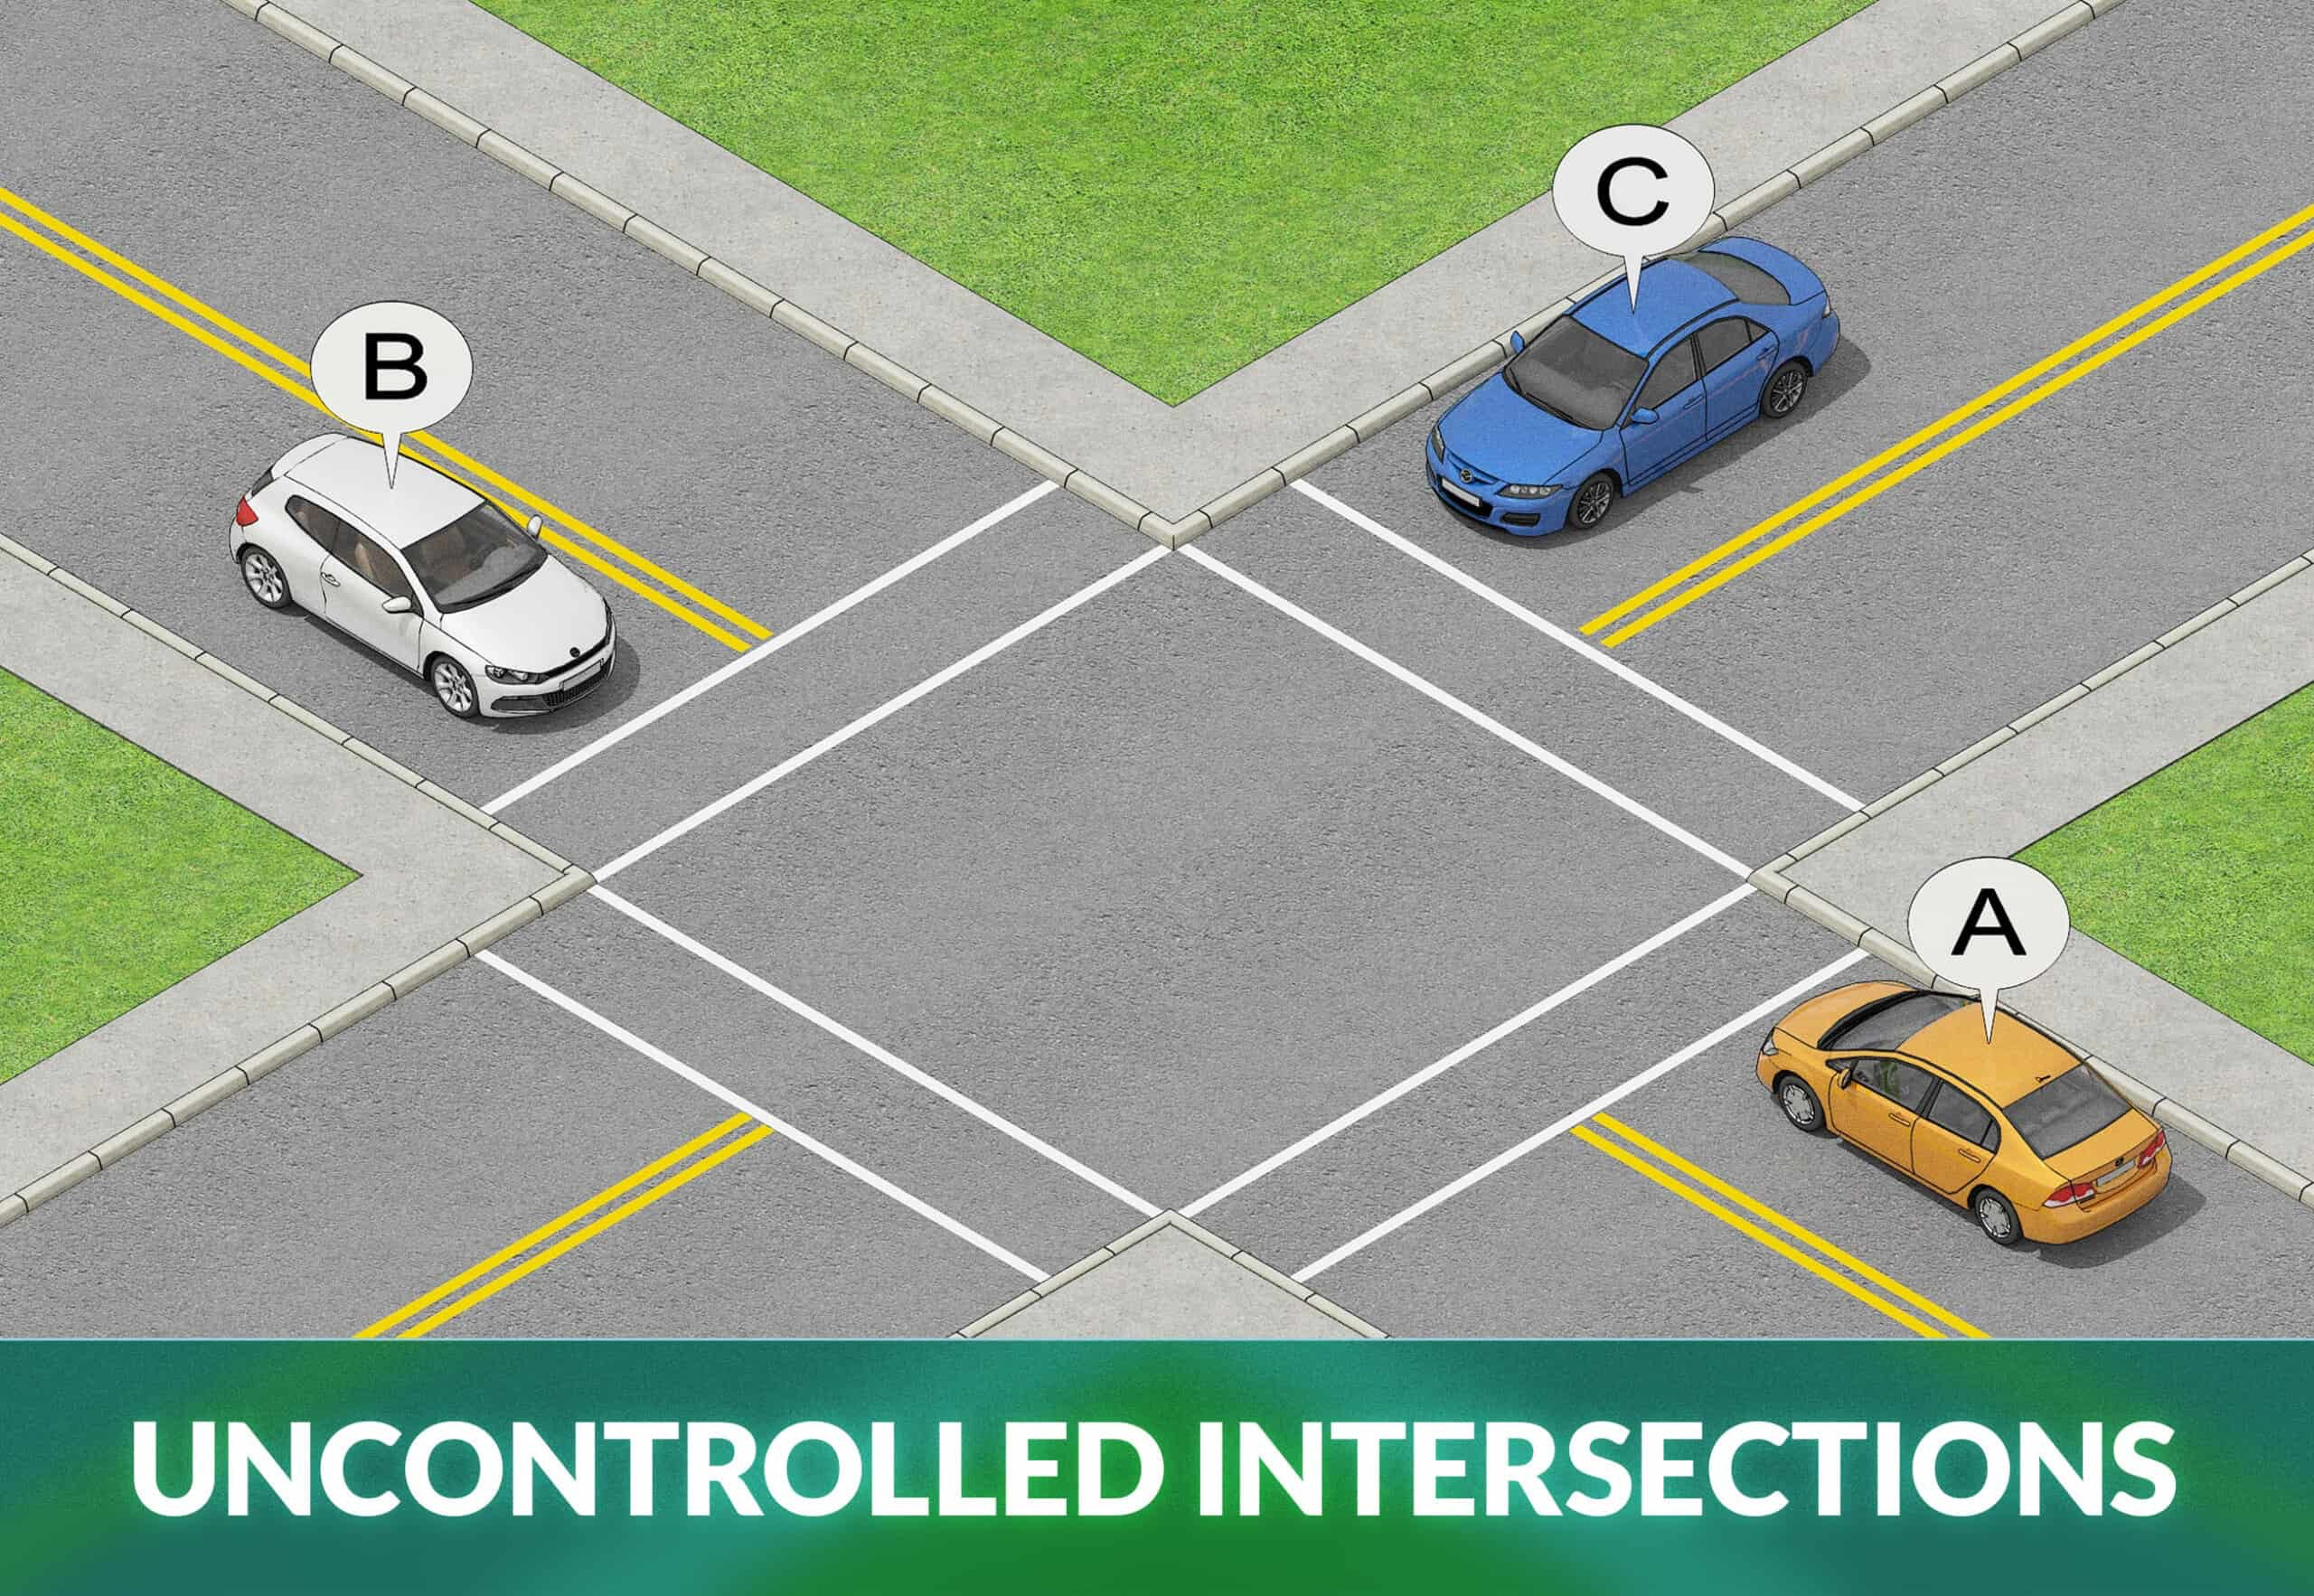 UNCONTROLLED INTERSECTIONS